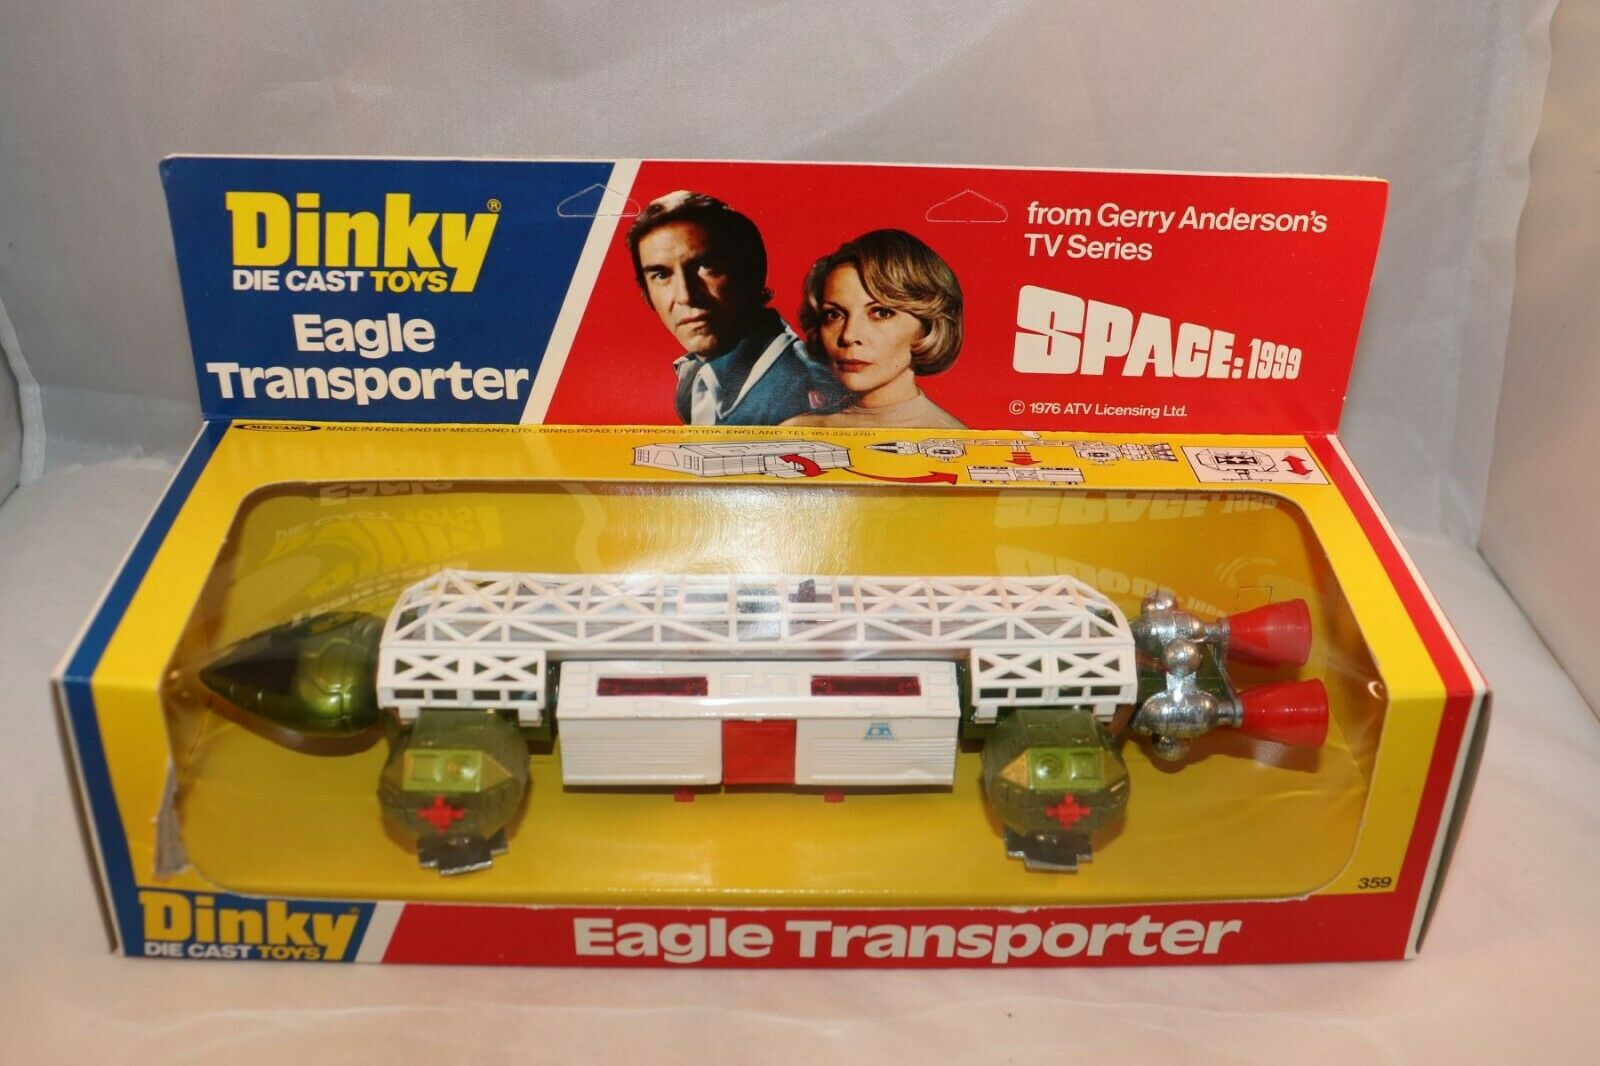 Dinky Toys 359 Eagle Transporter perfect mint in a SUPER box SEE THE PICTURES